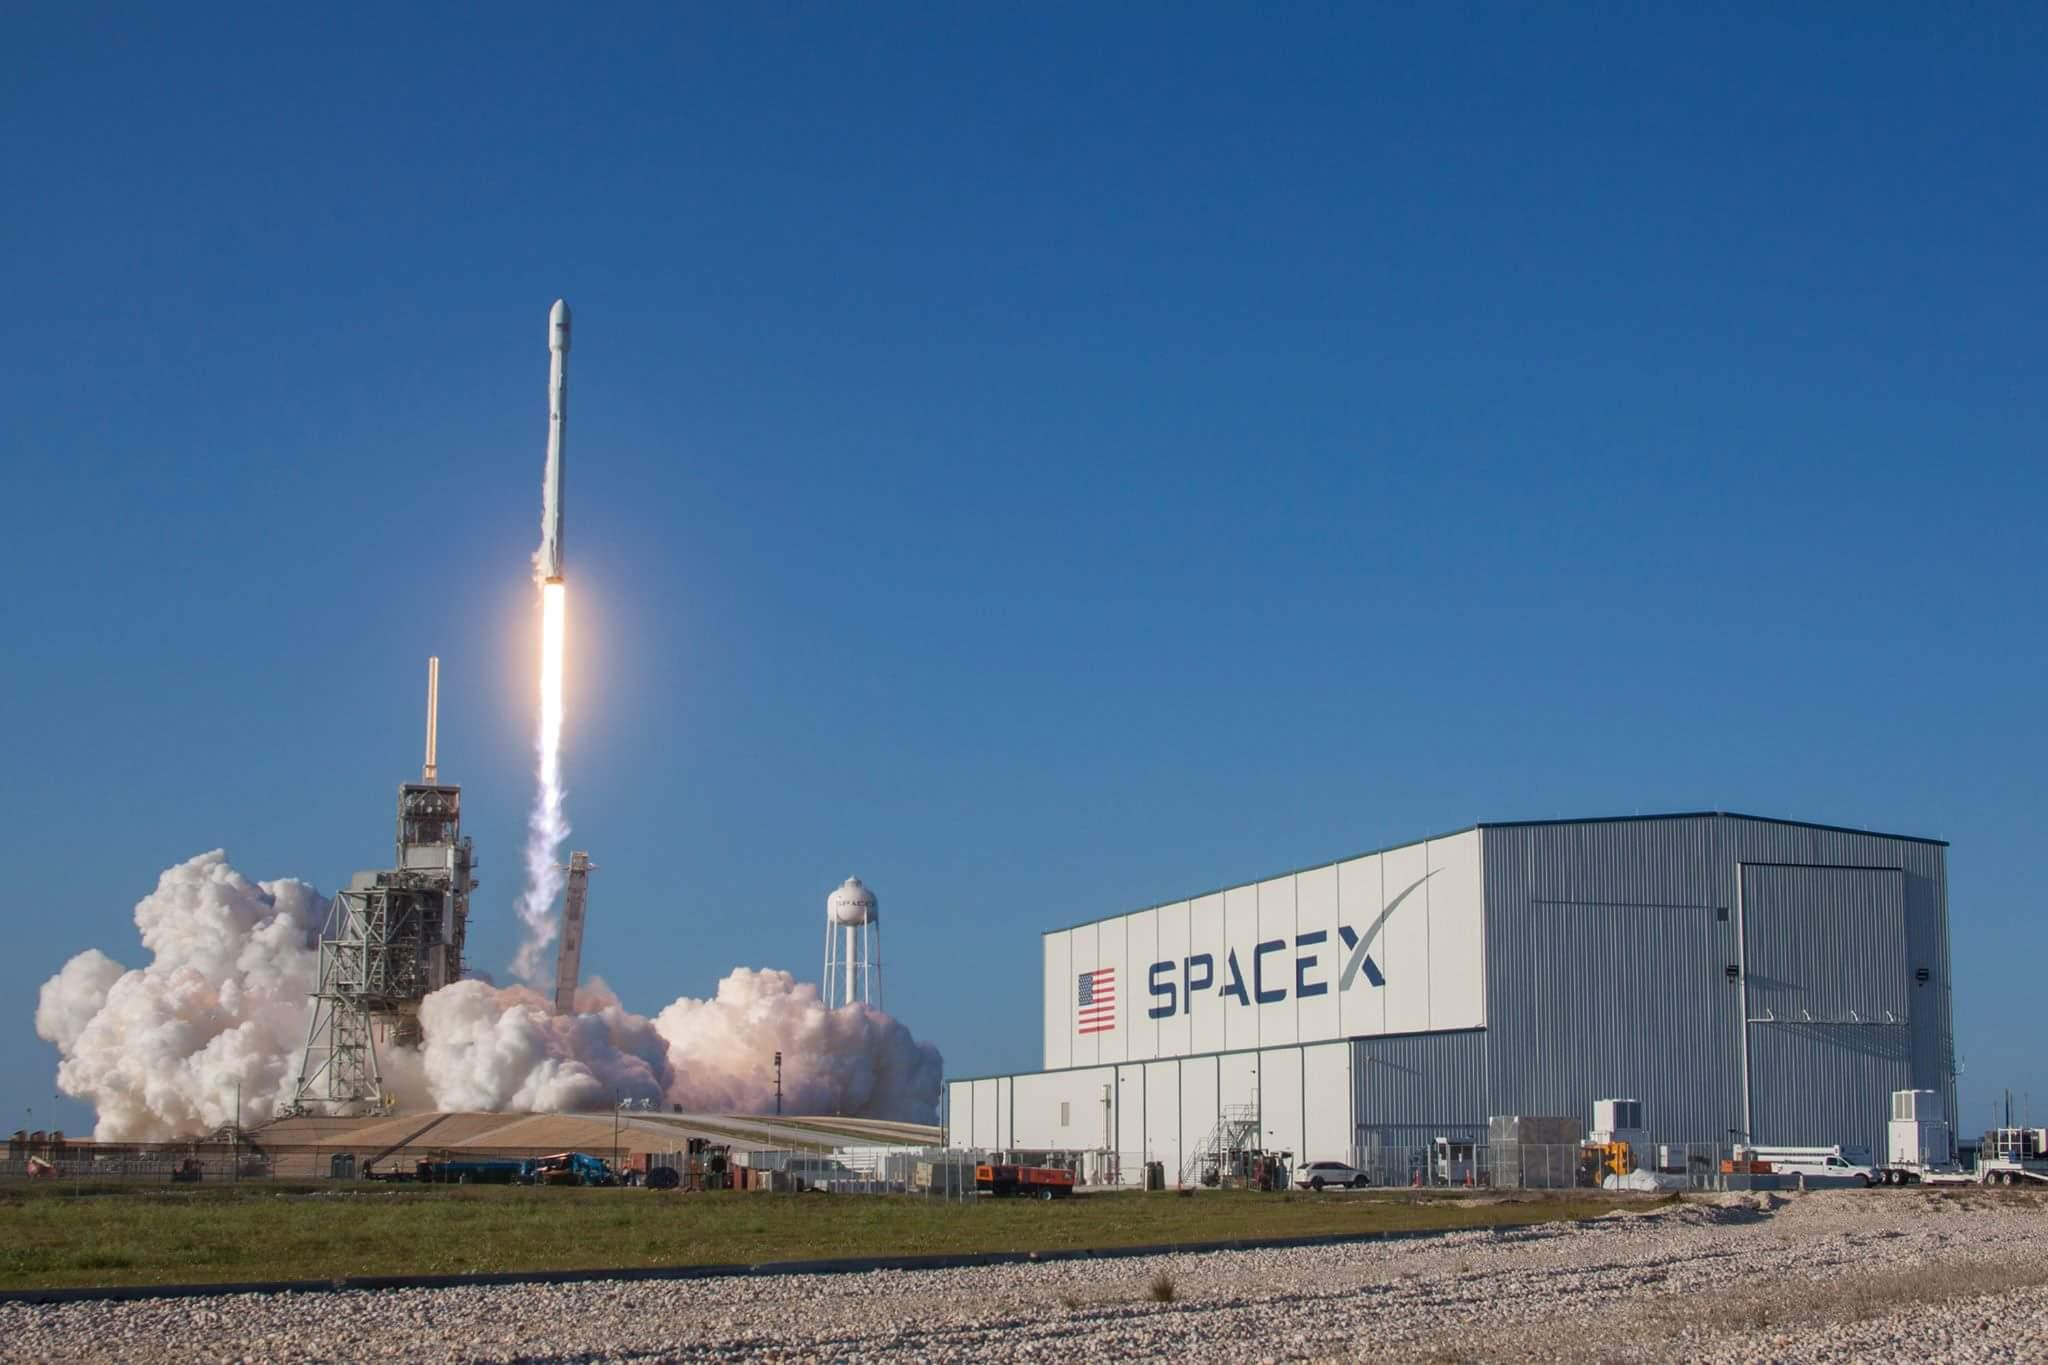 SpaceX to attempt Falcon 9 rocket launch Wednesday night